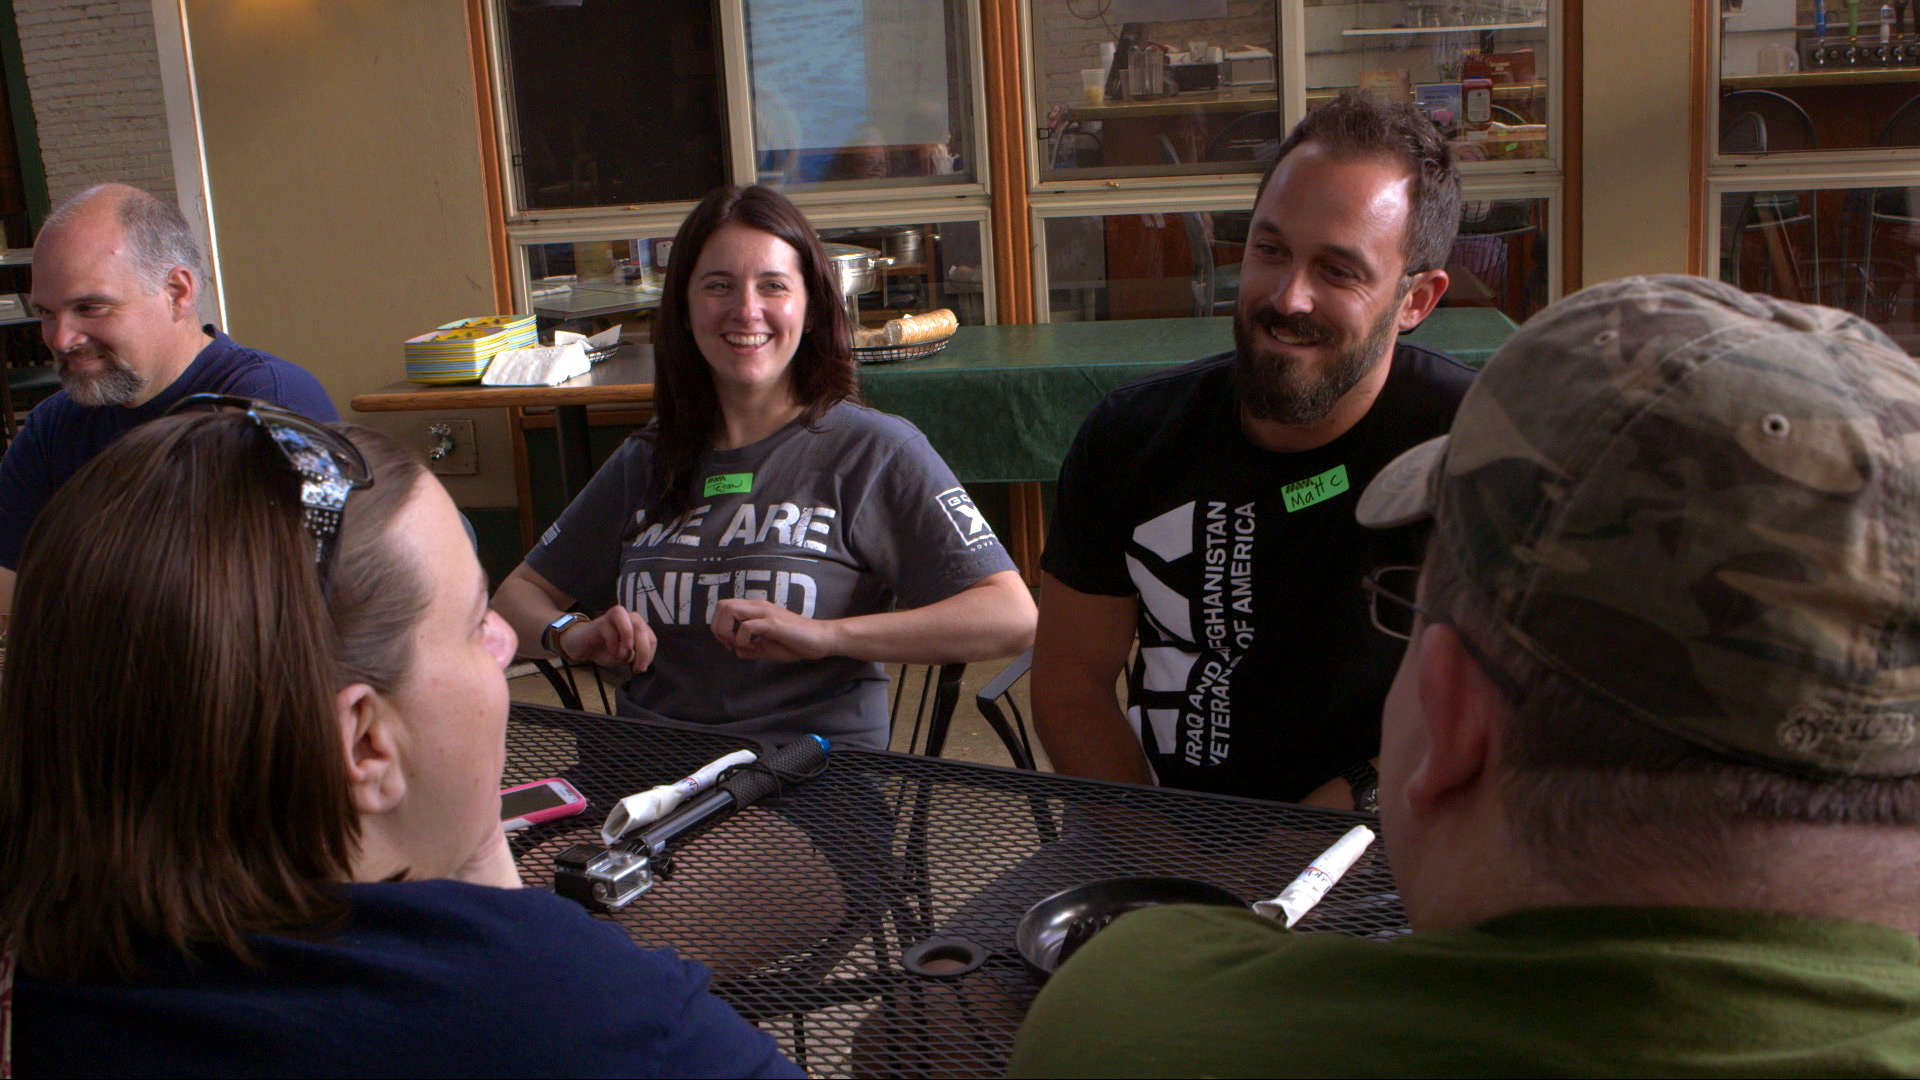 Vets_Smiling_Talking_on_Patio_AmericanCreed_72dpi.jpg